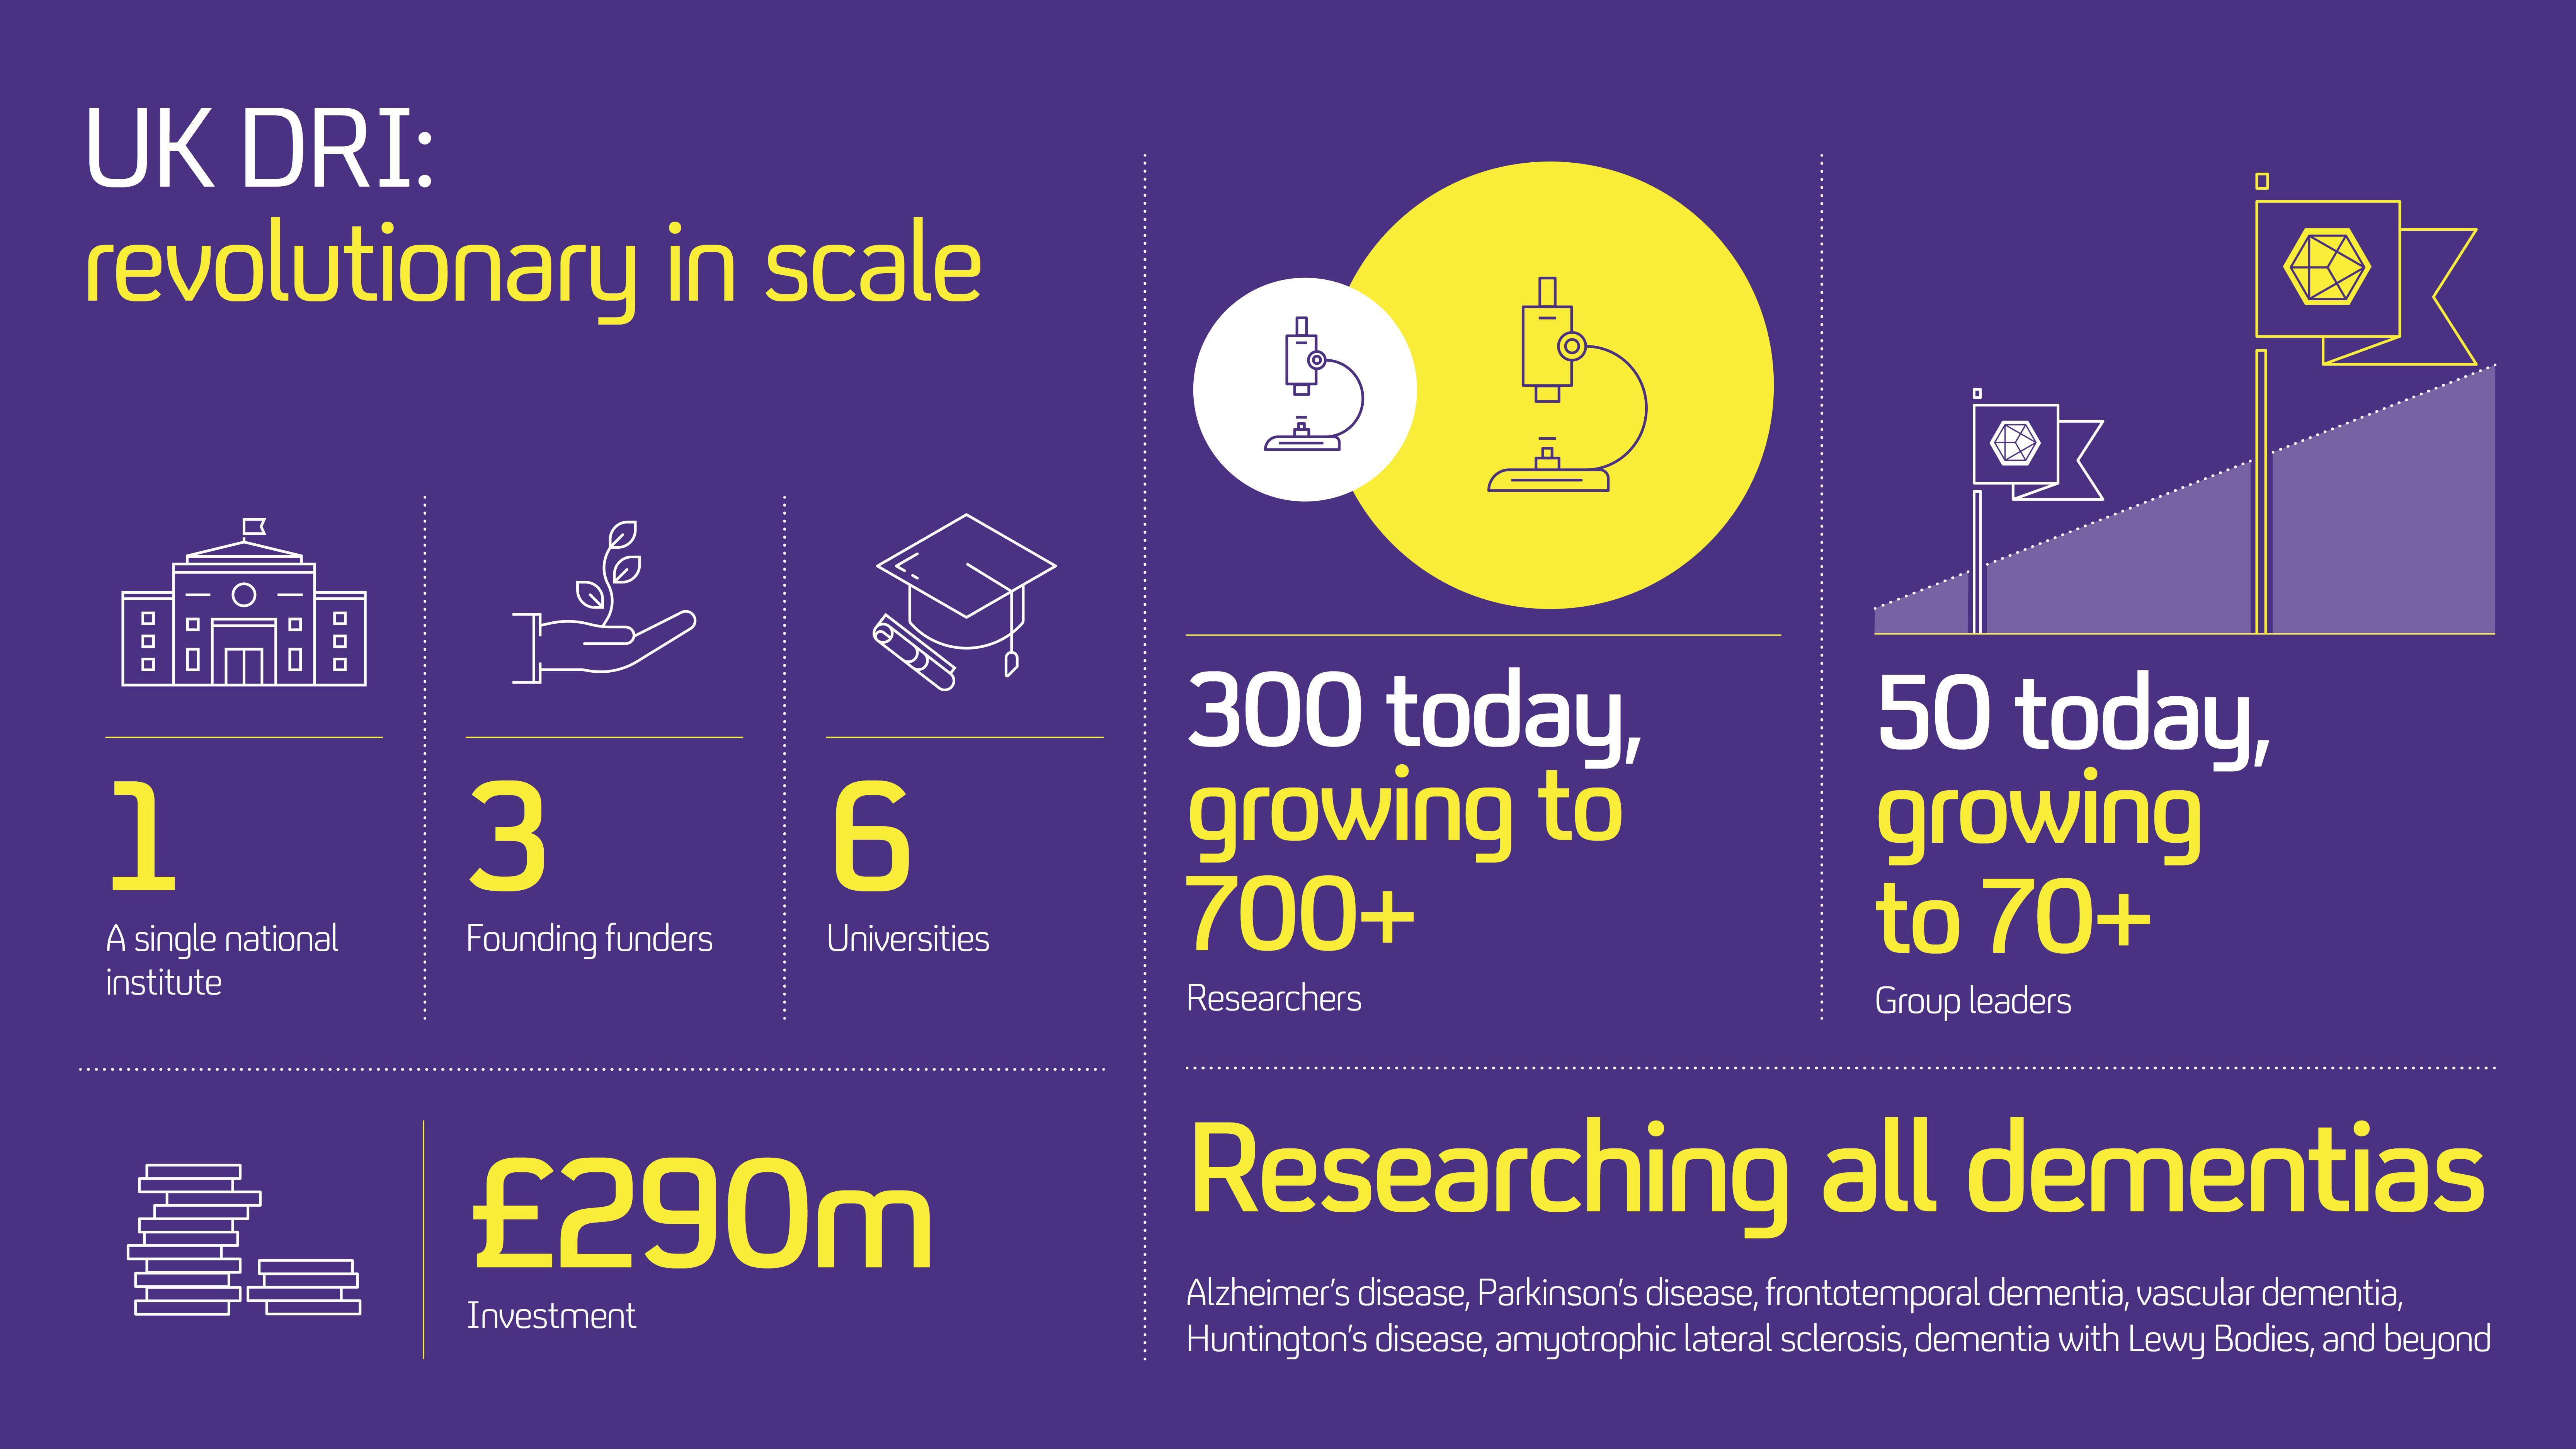 Uk Dri In Numbers